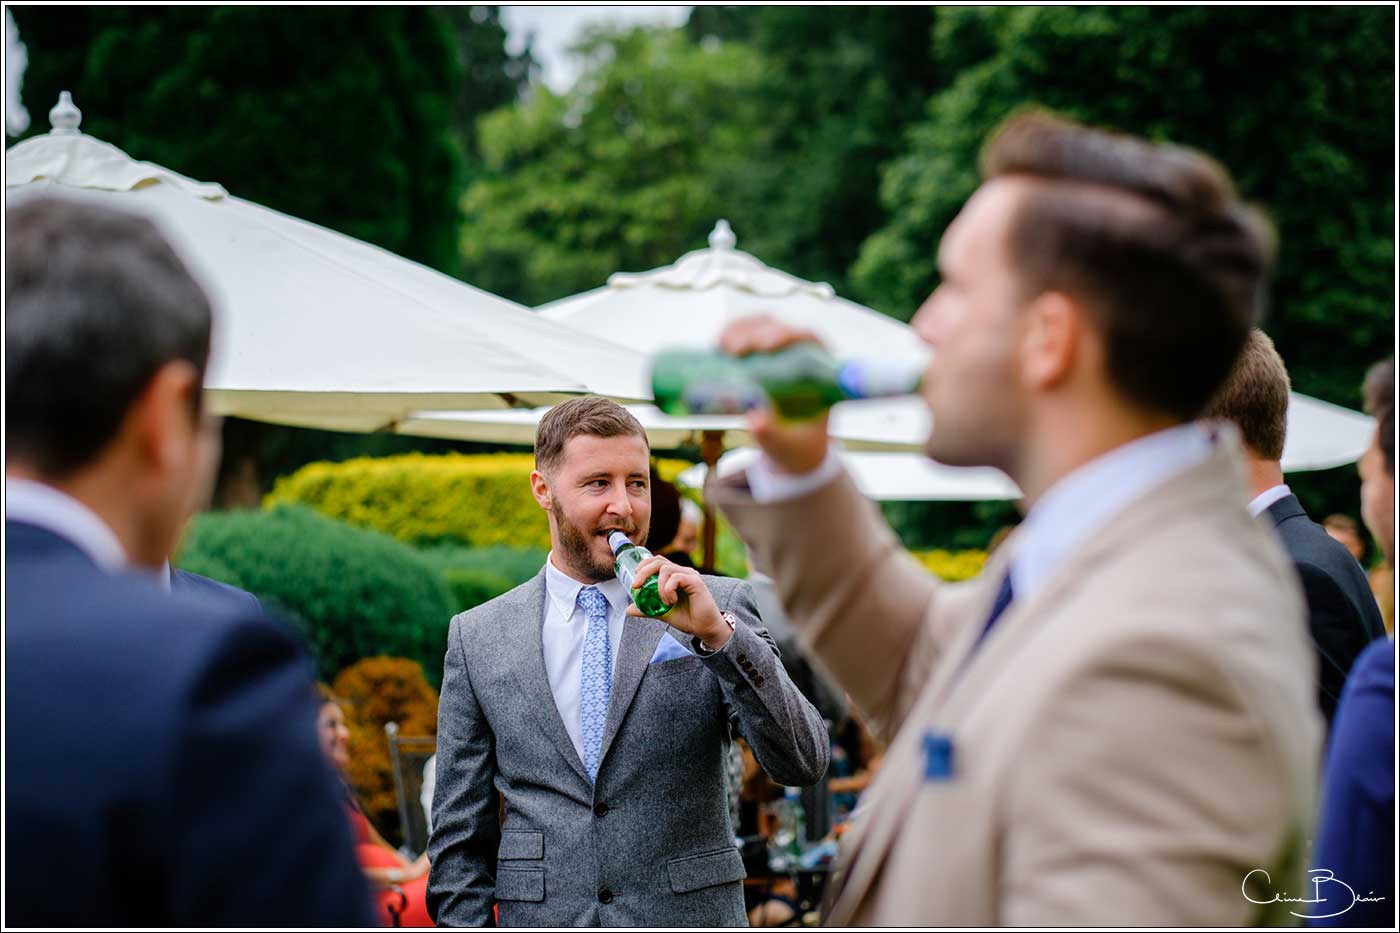 Coombe Abbey wedding photography showing men drinking during the drinks reception on the lawn